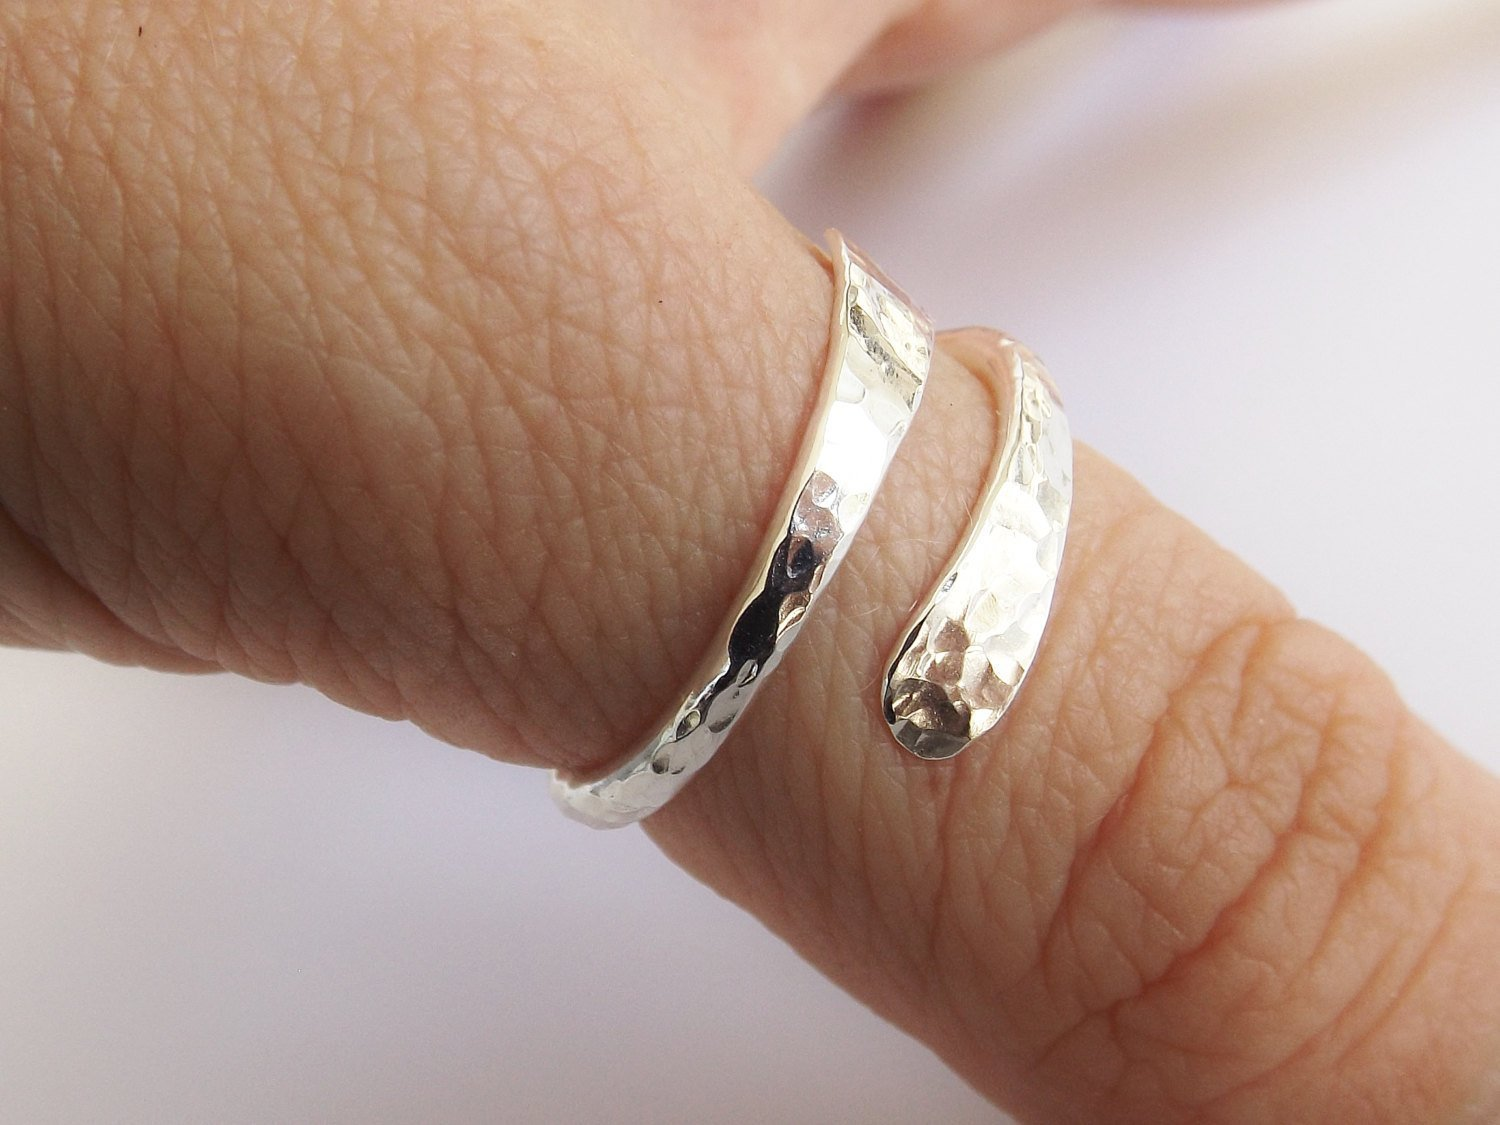 Bypass Thumb Ring,Hammered Thumb Ring,Textured Thumb Ring,Wrap Around Ring,Statement Ring,Bypass Ring,Sterling Silver Jewellery,Modern Ring